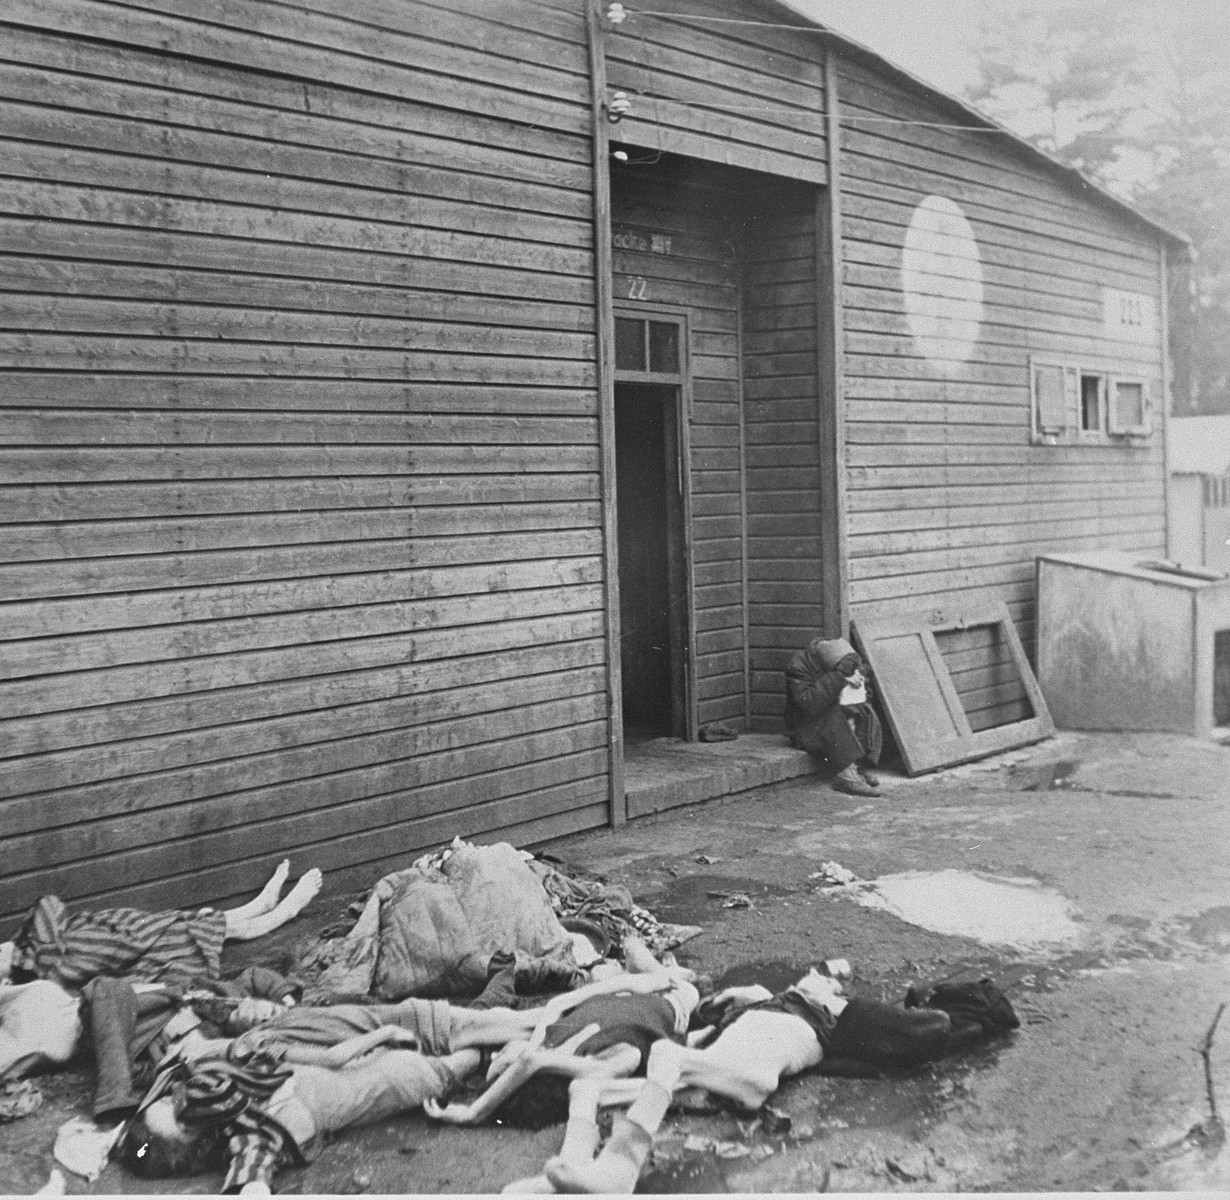 Corpses lie on the ground outside of the infirmary in Bergen-Belsen.